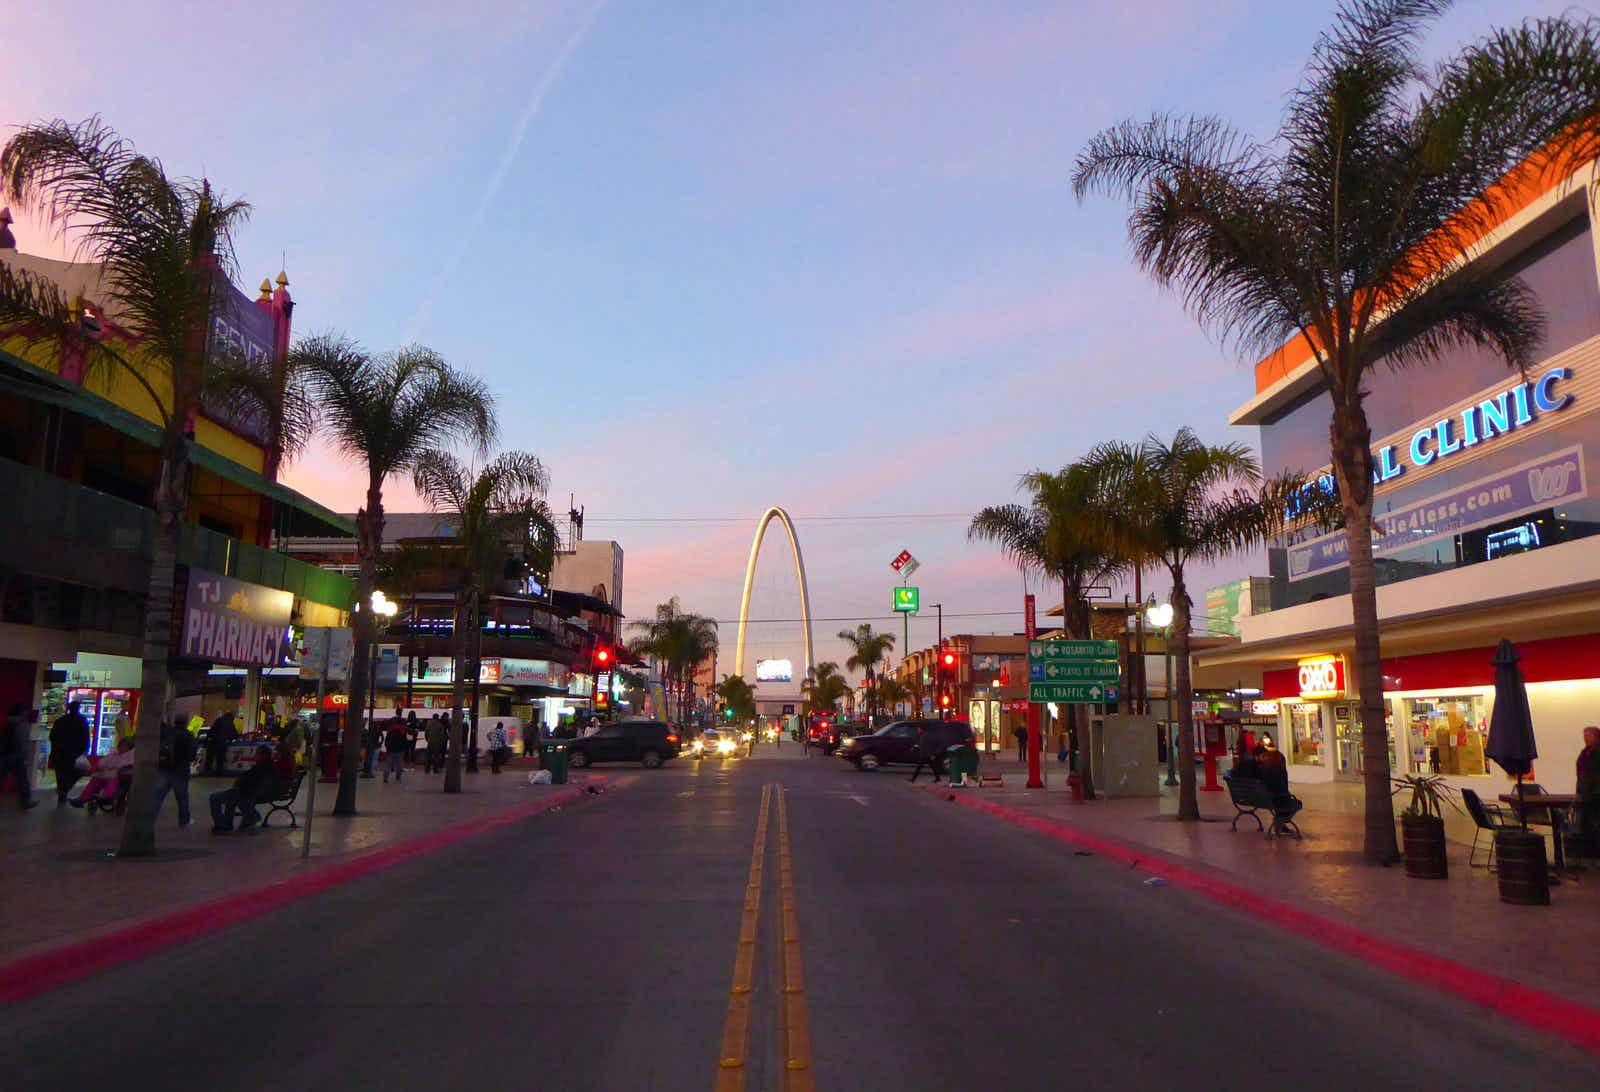 An empty street lined with palm trees with an arch at one end under a blue sky dotted with pink clouds